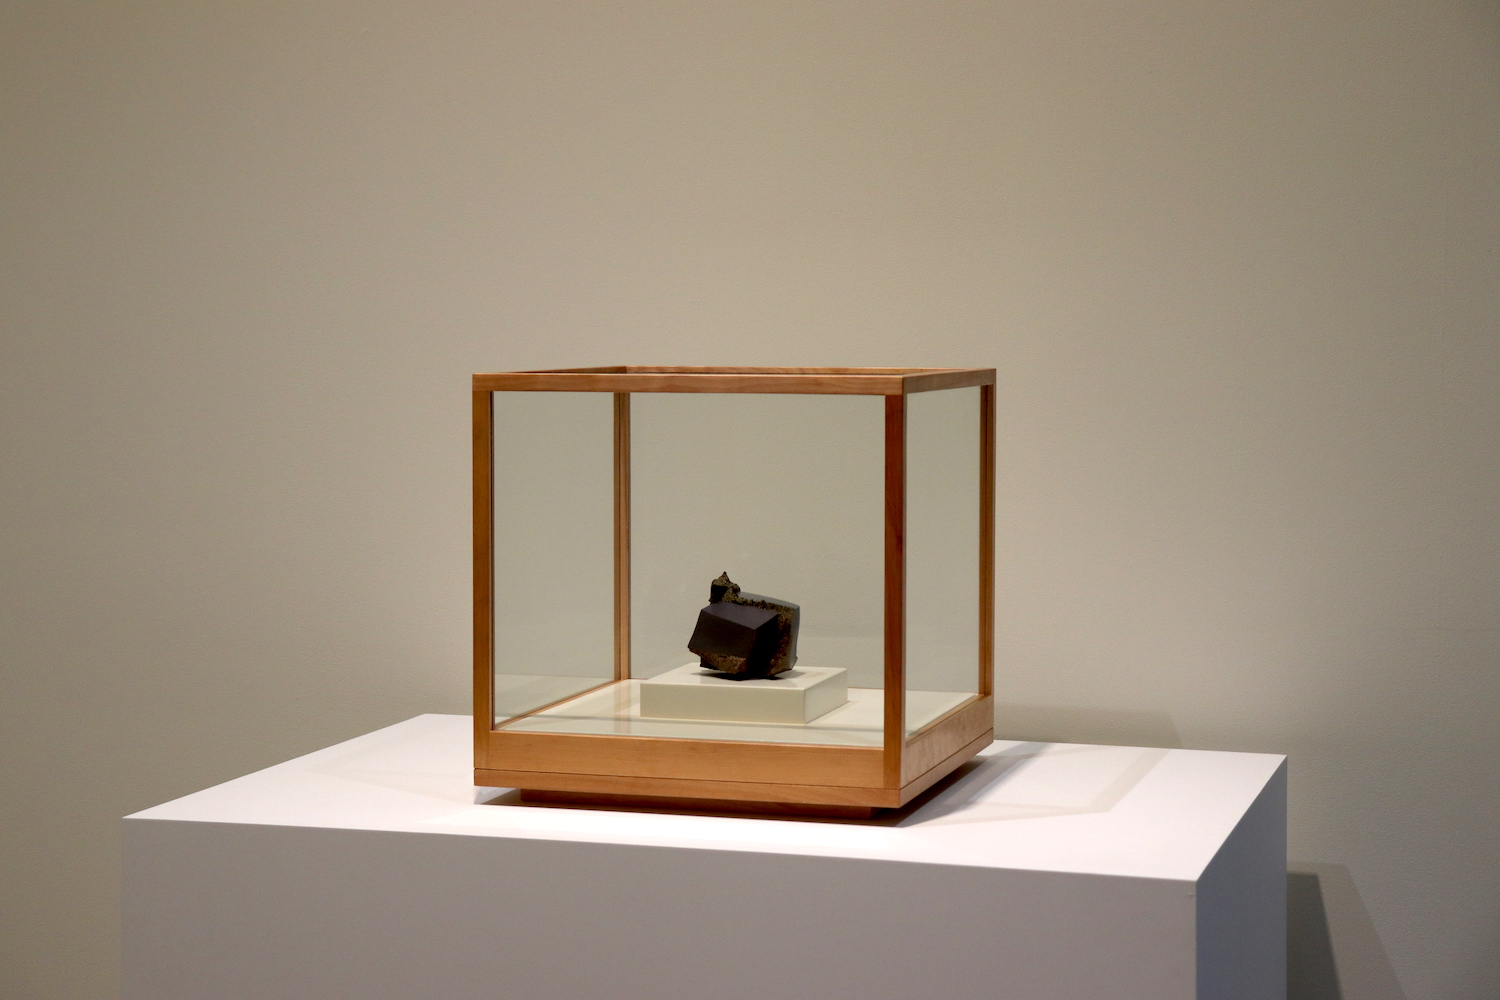 Kenneth Price, Edo, 1983, earthenware with hand-painted glaze in wooden display box, 13 x 10.8 x 11.3 cm